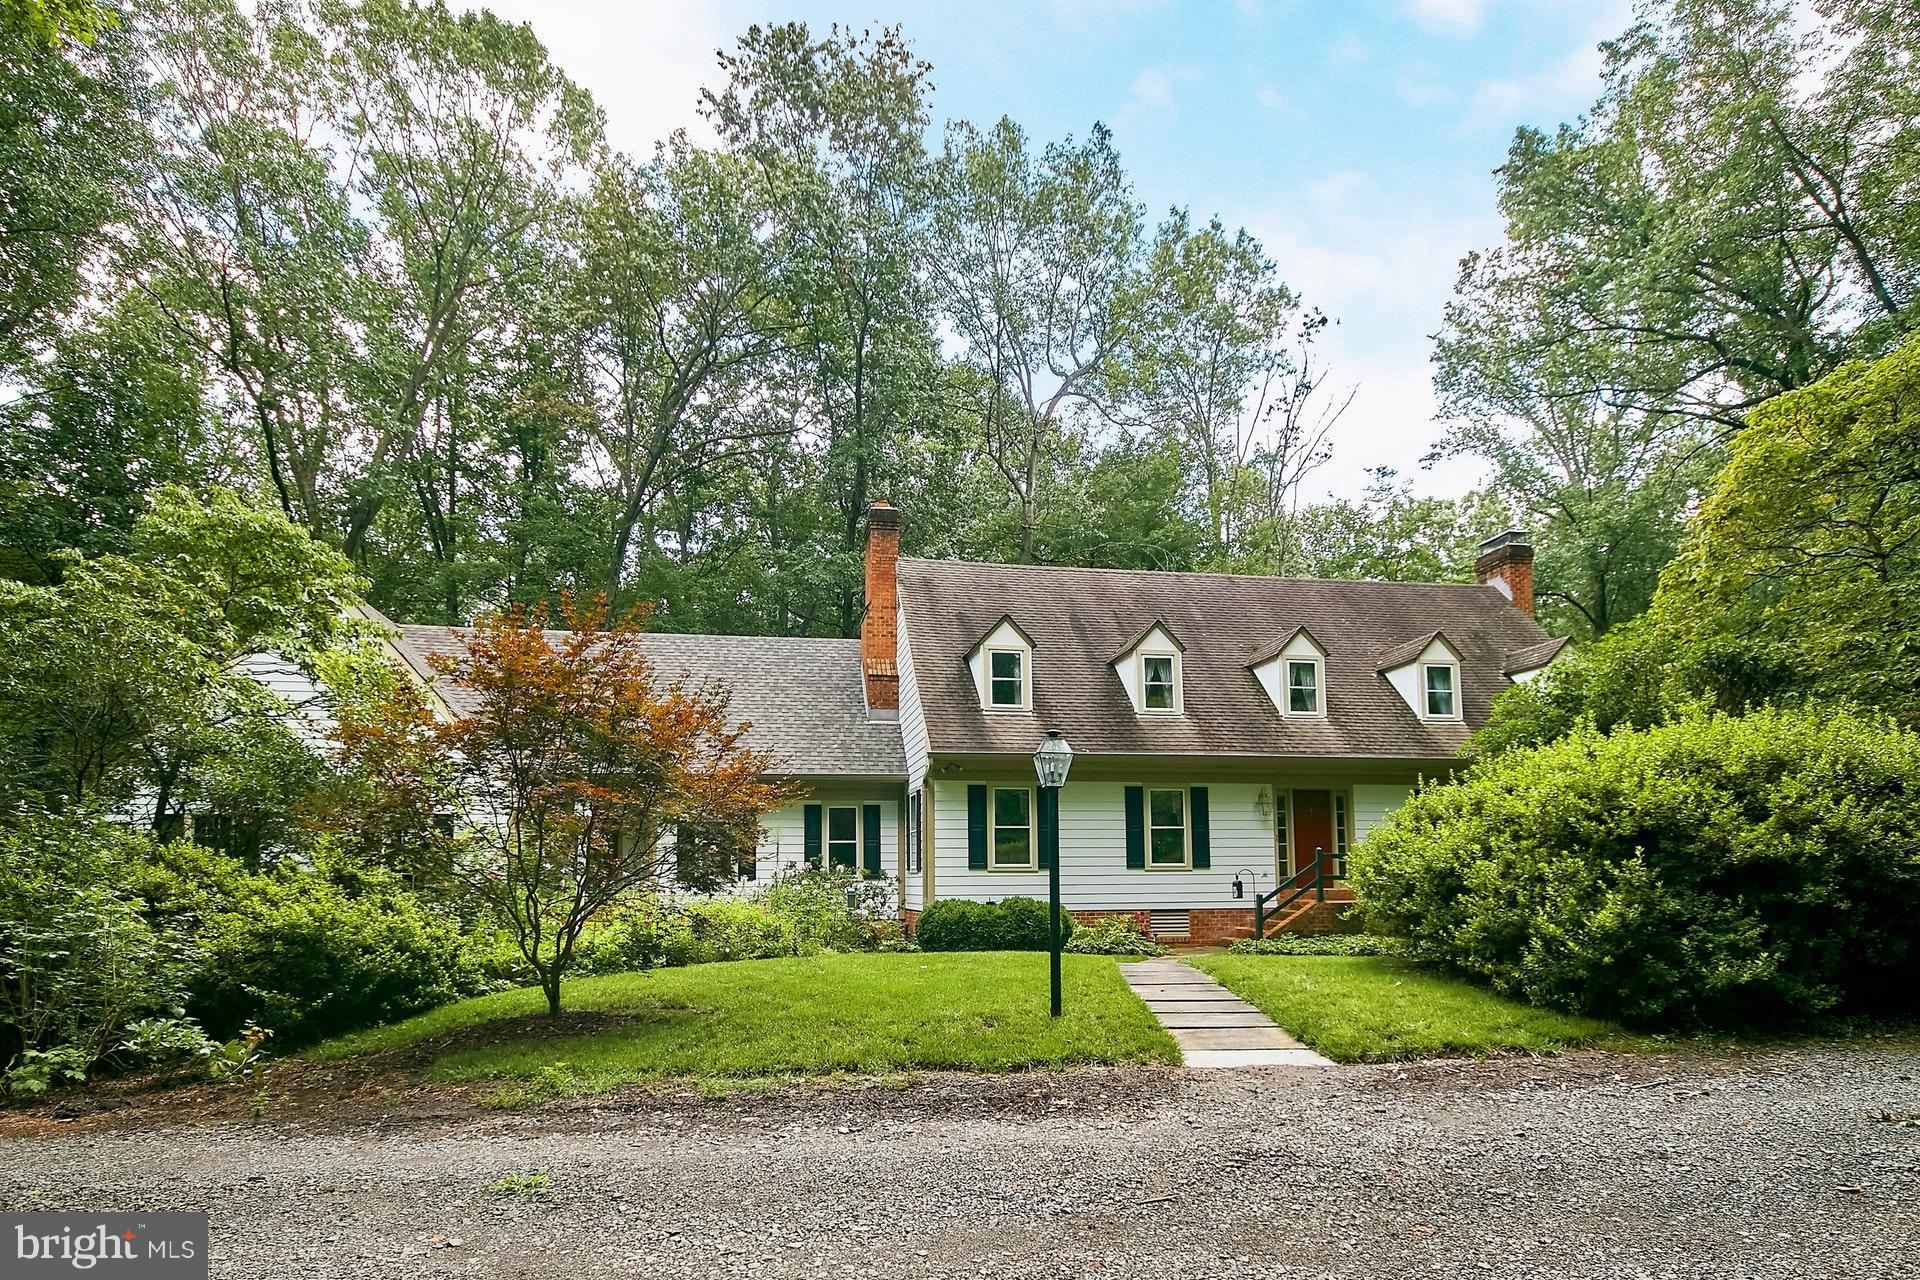 10810 HUNTER STATION ROAD, VIENNA, VA 22181